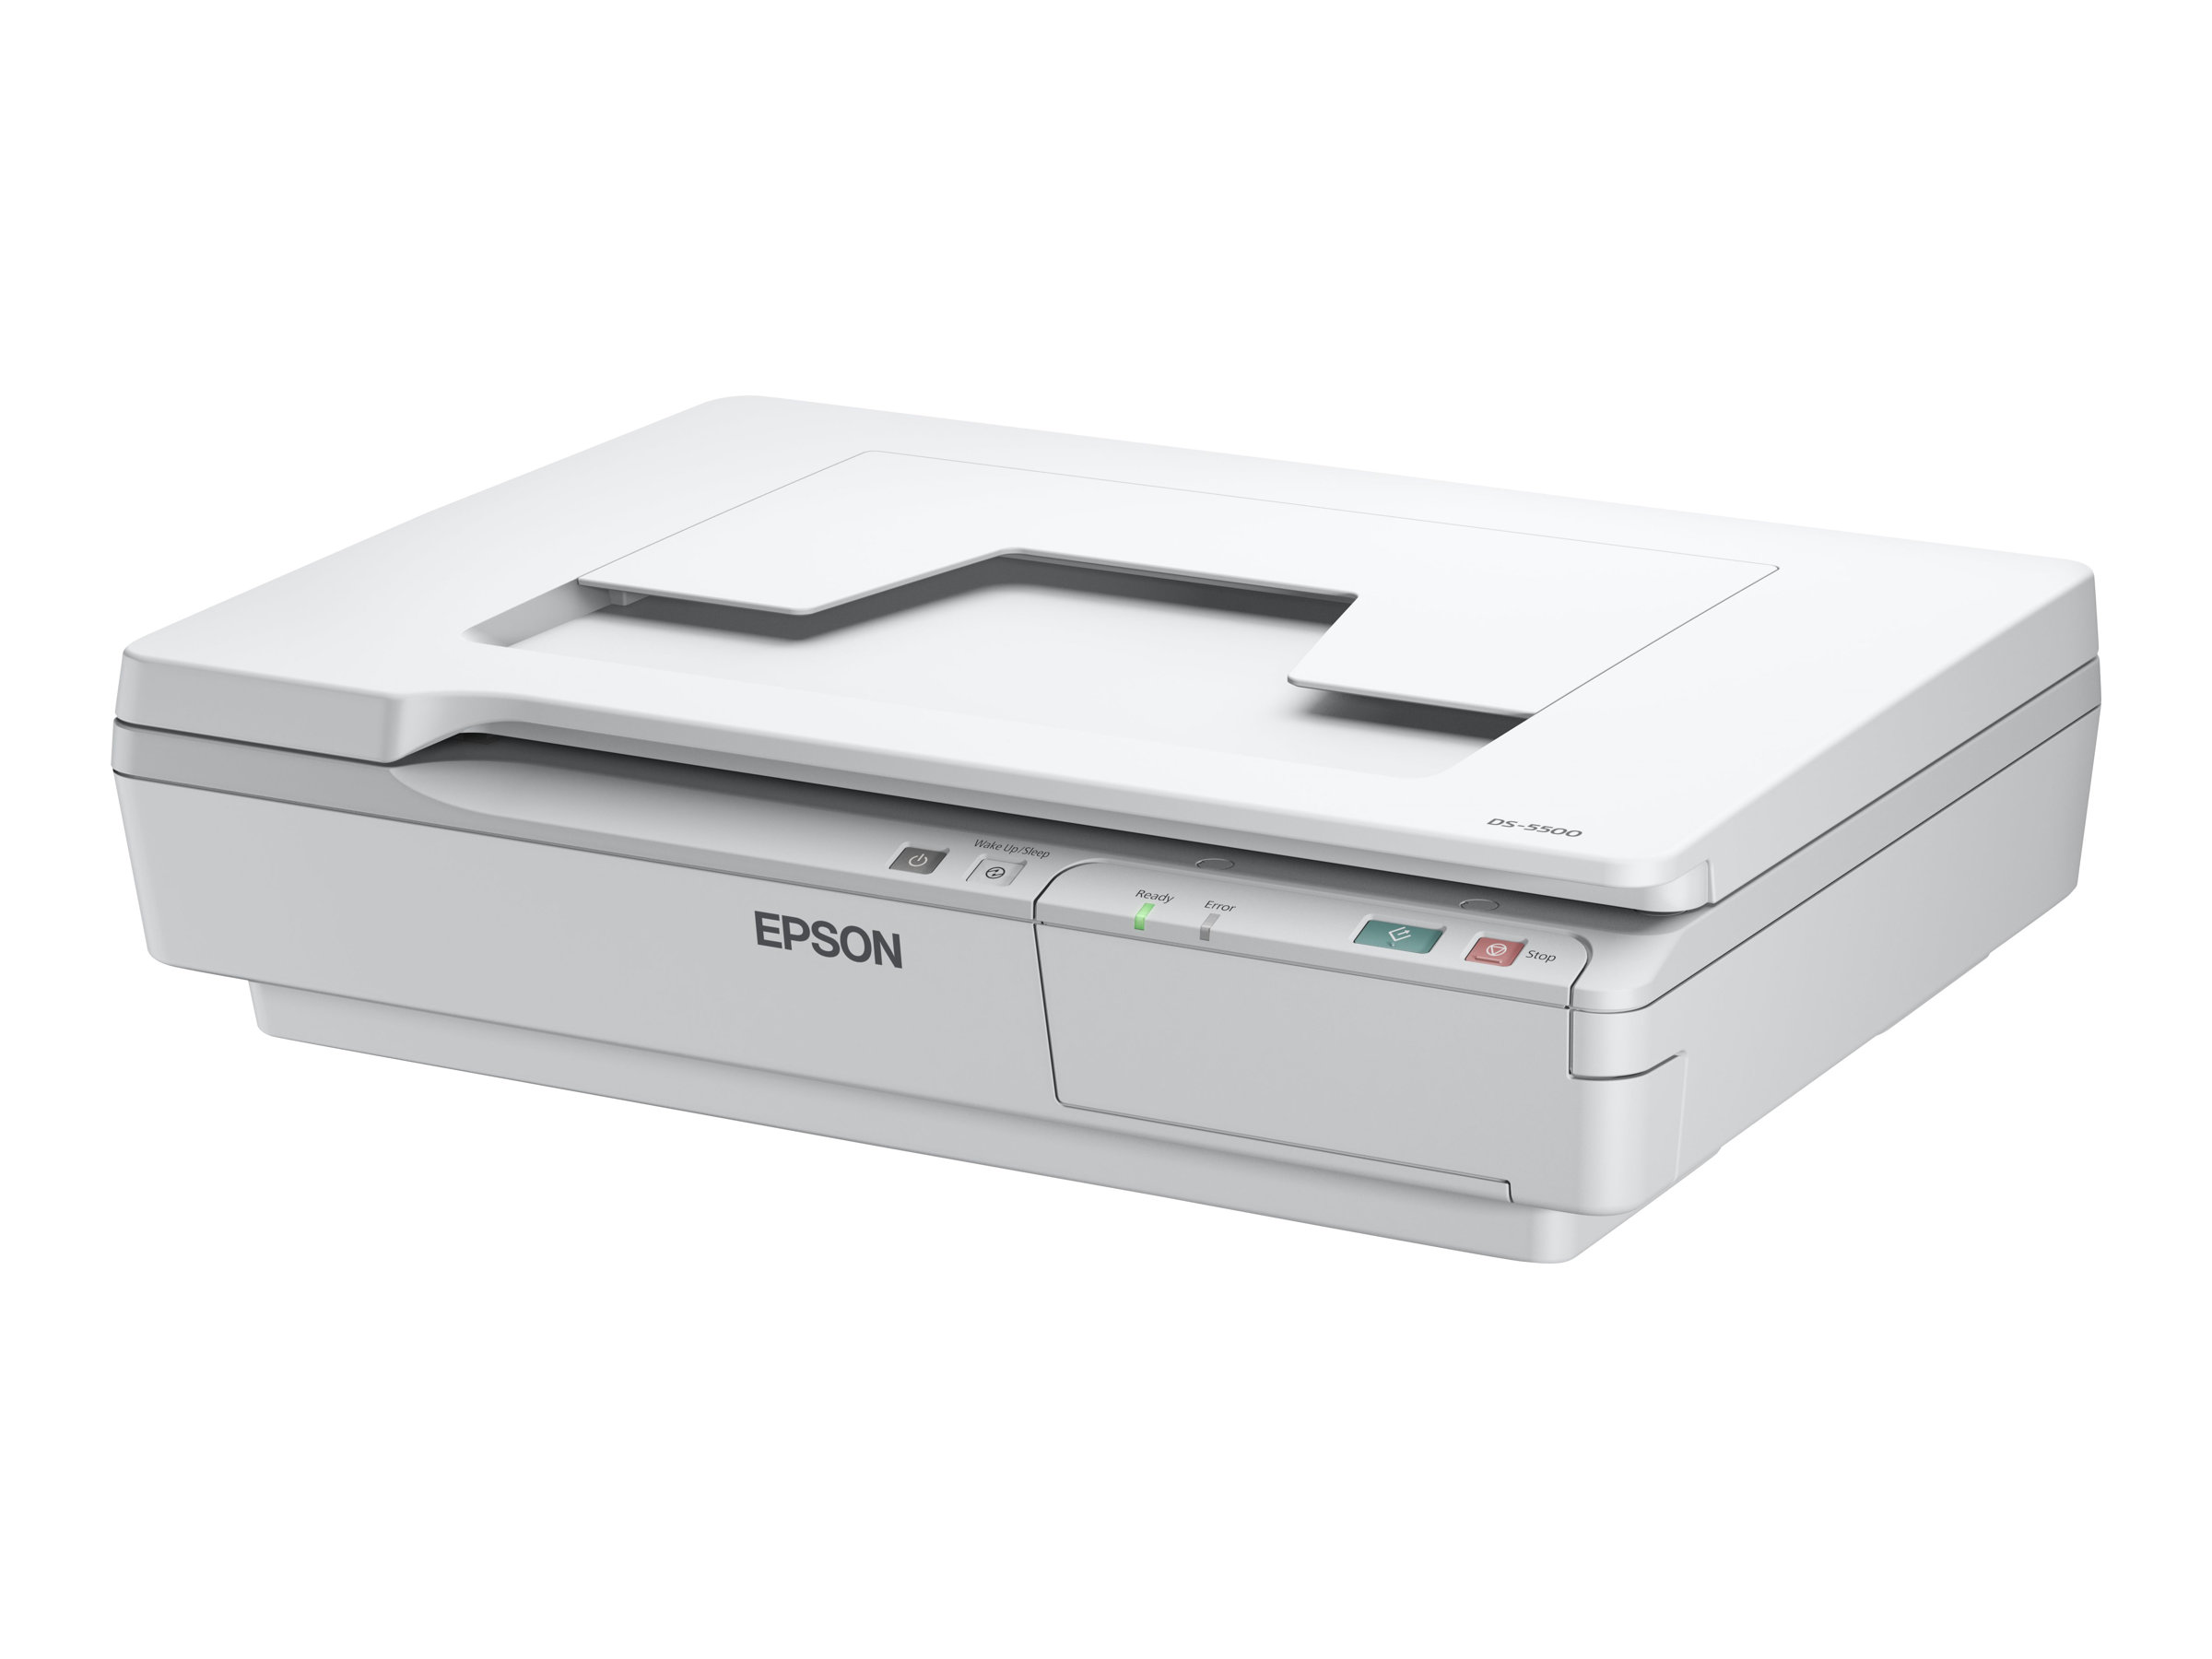 Epson WorkForce DS-5500 - scanner de documents A4 -  1200 ppp x 1200 ppp - 7.5ppm